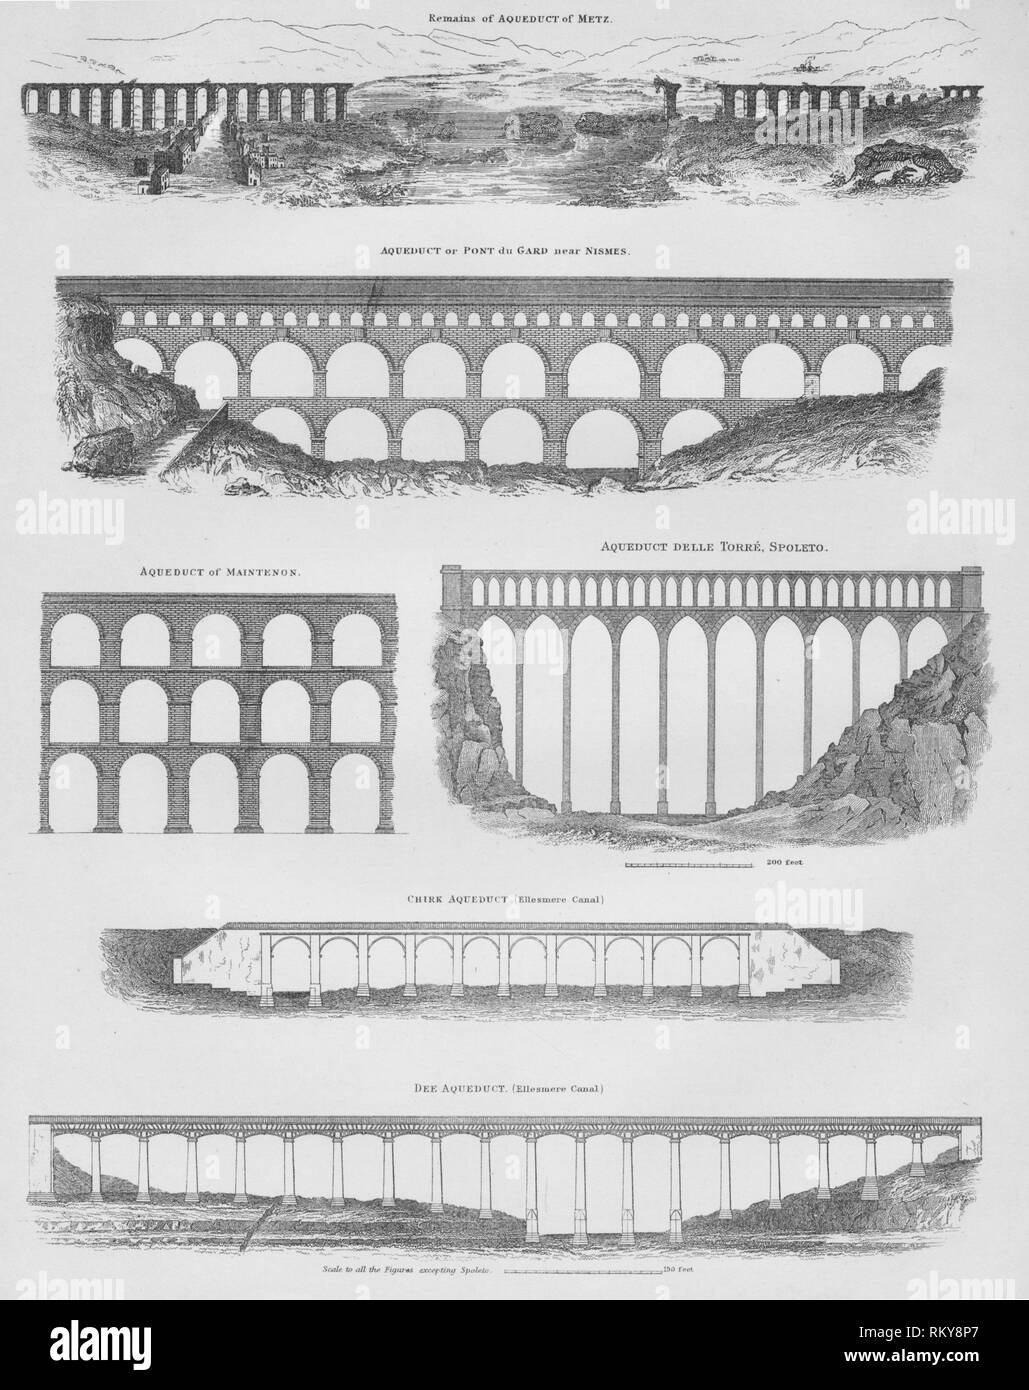 Aqueducts, 1889. 'Remains of Aqueduct of Metz [France, Roman]; Aqueduct of Pont du Gard near Nismes [over the River Gardon near Nîmes, France, Roman]; Aqueduct of Maintenon [built by Louis XIV to carry water from the Eure River to the gardens of the Palace of Versailles, France]; Aqueduct Delle Torre, Spoleto [Ponte delle Torri, Italy, 13th-century aqueduct possibly built on Roman foundations]; Chirk Aqueduct (Ellesmere Canal), [designed in 1801 by Thomas Telford, carries the Llangollen Canal across the River Ceiriog near Wrexham in Wales]; Dee Aqueduct (Ellesmere Canal)', [completed in 1 - Stock Image